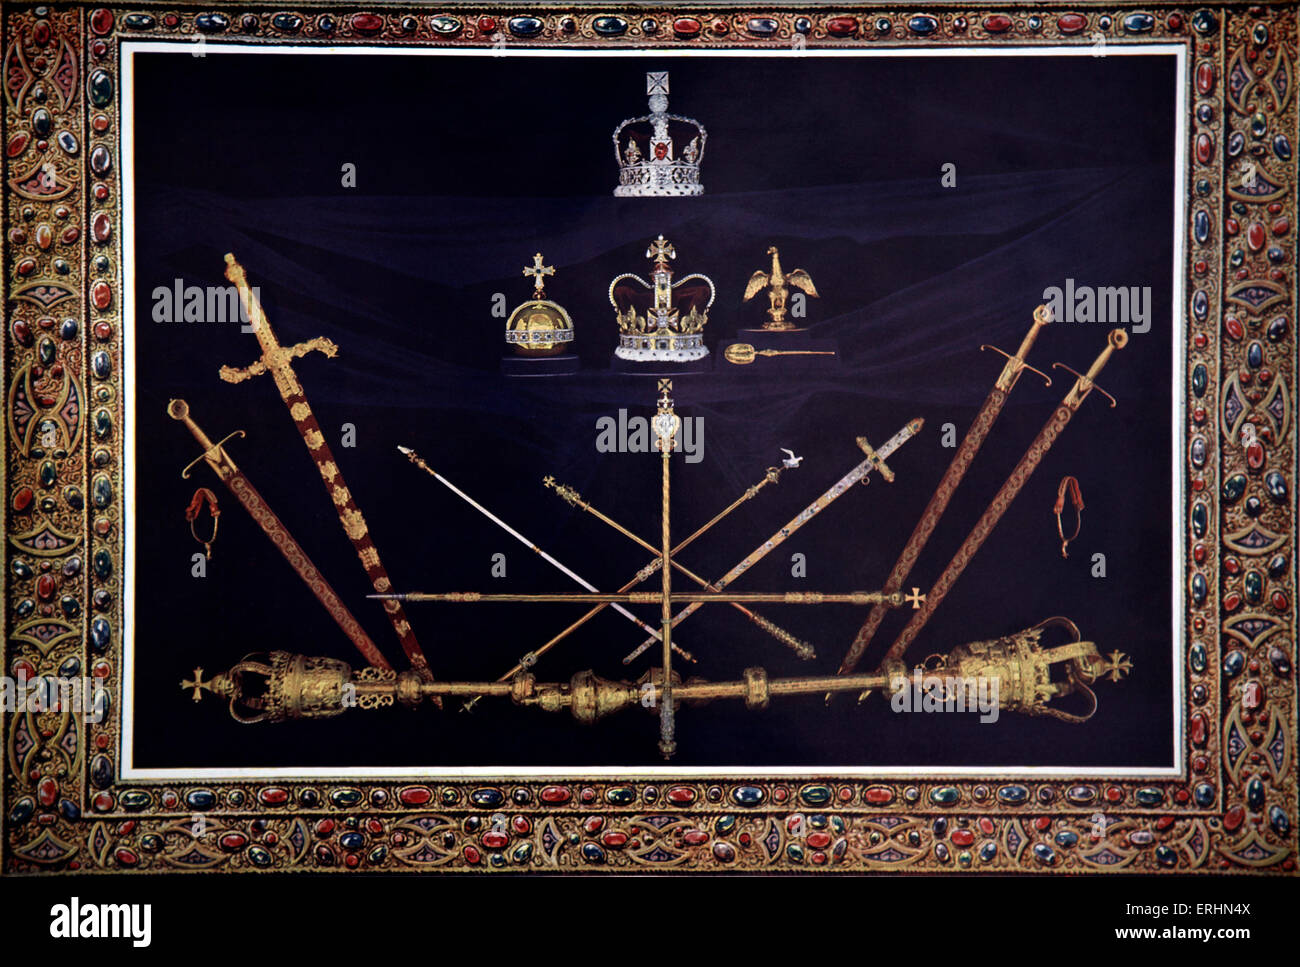 Coronation ceremony regalia at the time of the coronation of King George V 1910. Imperial Crown, Crown of  St Edward, - Stock Image